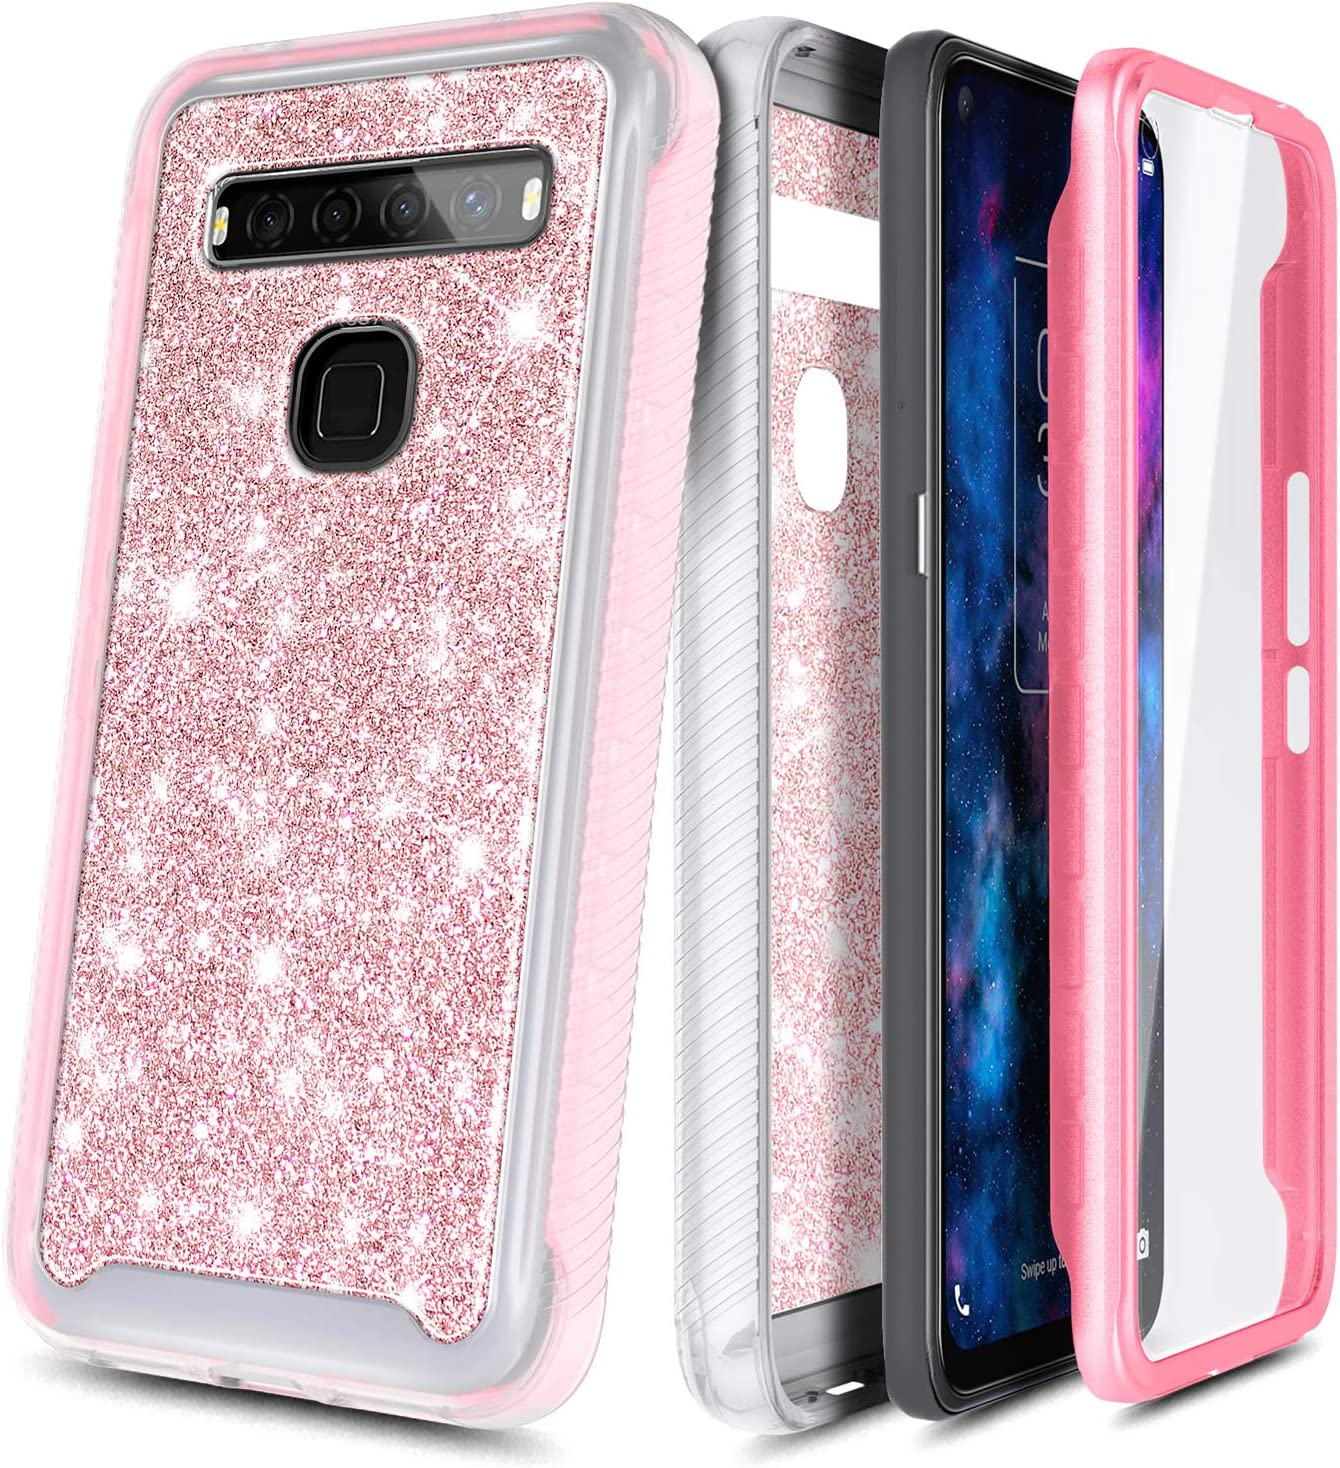 Verizon Impact Resist Durable Phone Case Full-Body Protective Shockproof Matte Rugged Bumper Cover NZND Case for TCL 10 5G UW Glitter Rose Gold with Built-in Screen Protector